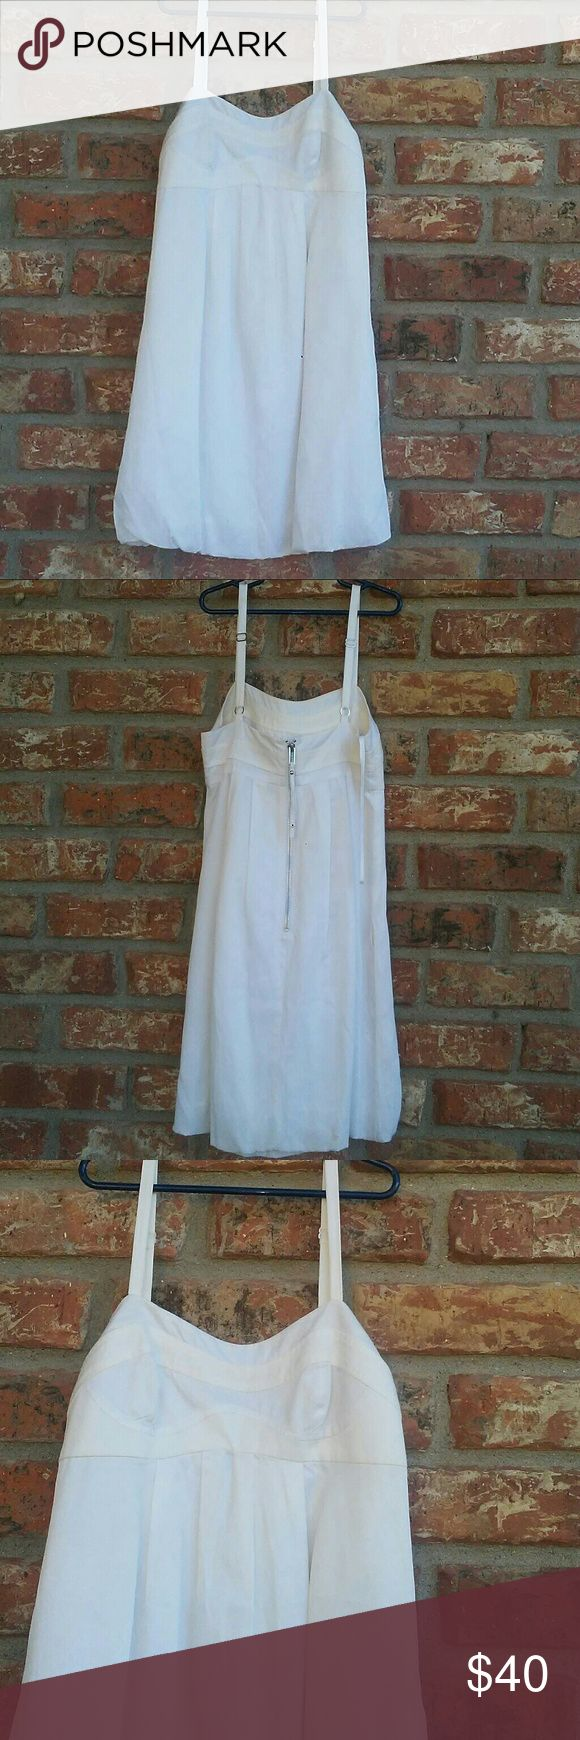 "AX Armani Exchange Dress Armani bubble strap summer dress white /cream color ,back great looking zipper.From shoulder strap to hemline 31"". Armani Exchange Dresses Midi"